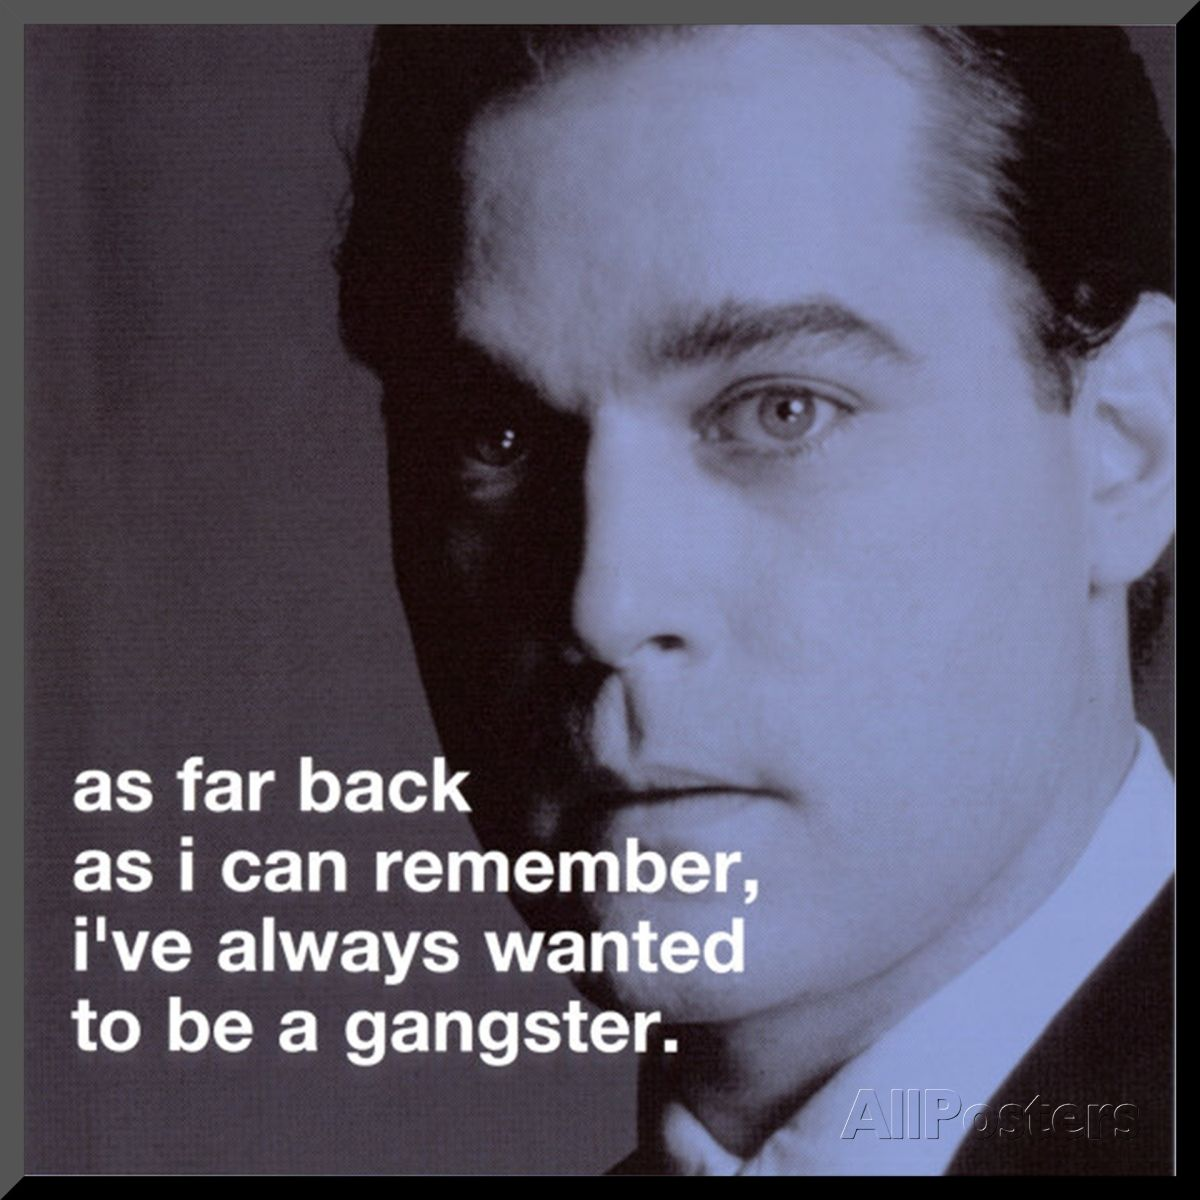 Goodfellas Quotes Henry Hill Google Search Goodfellas Quotes Goodfellas Ray Liotta Goodfellas